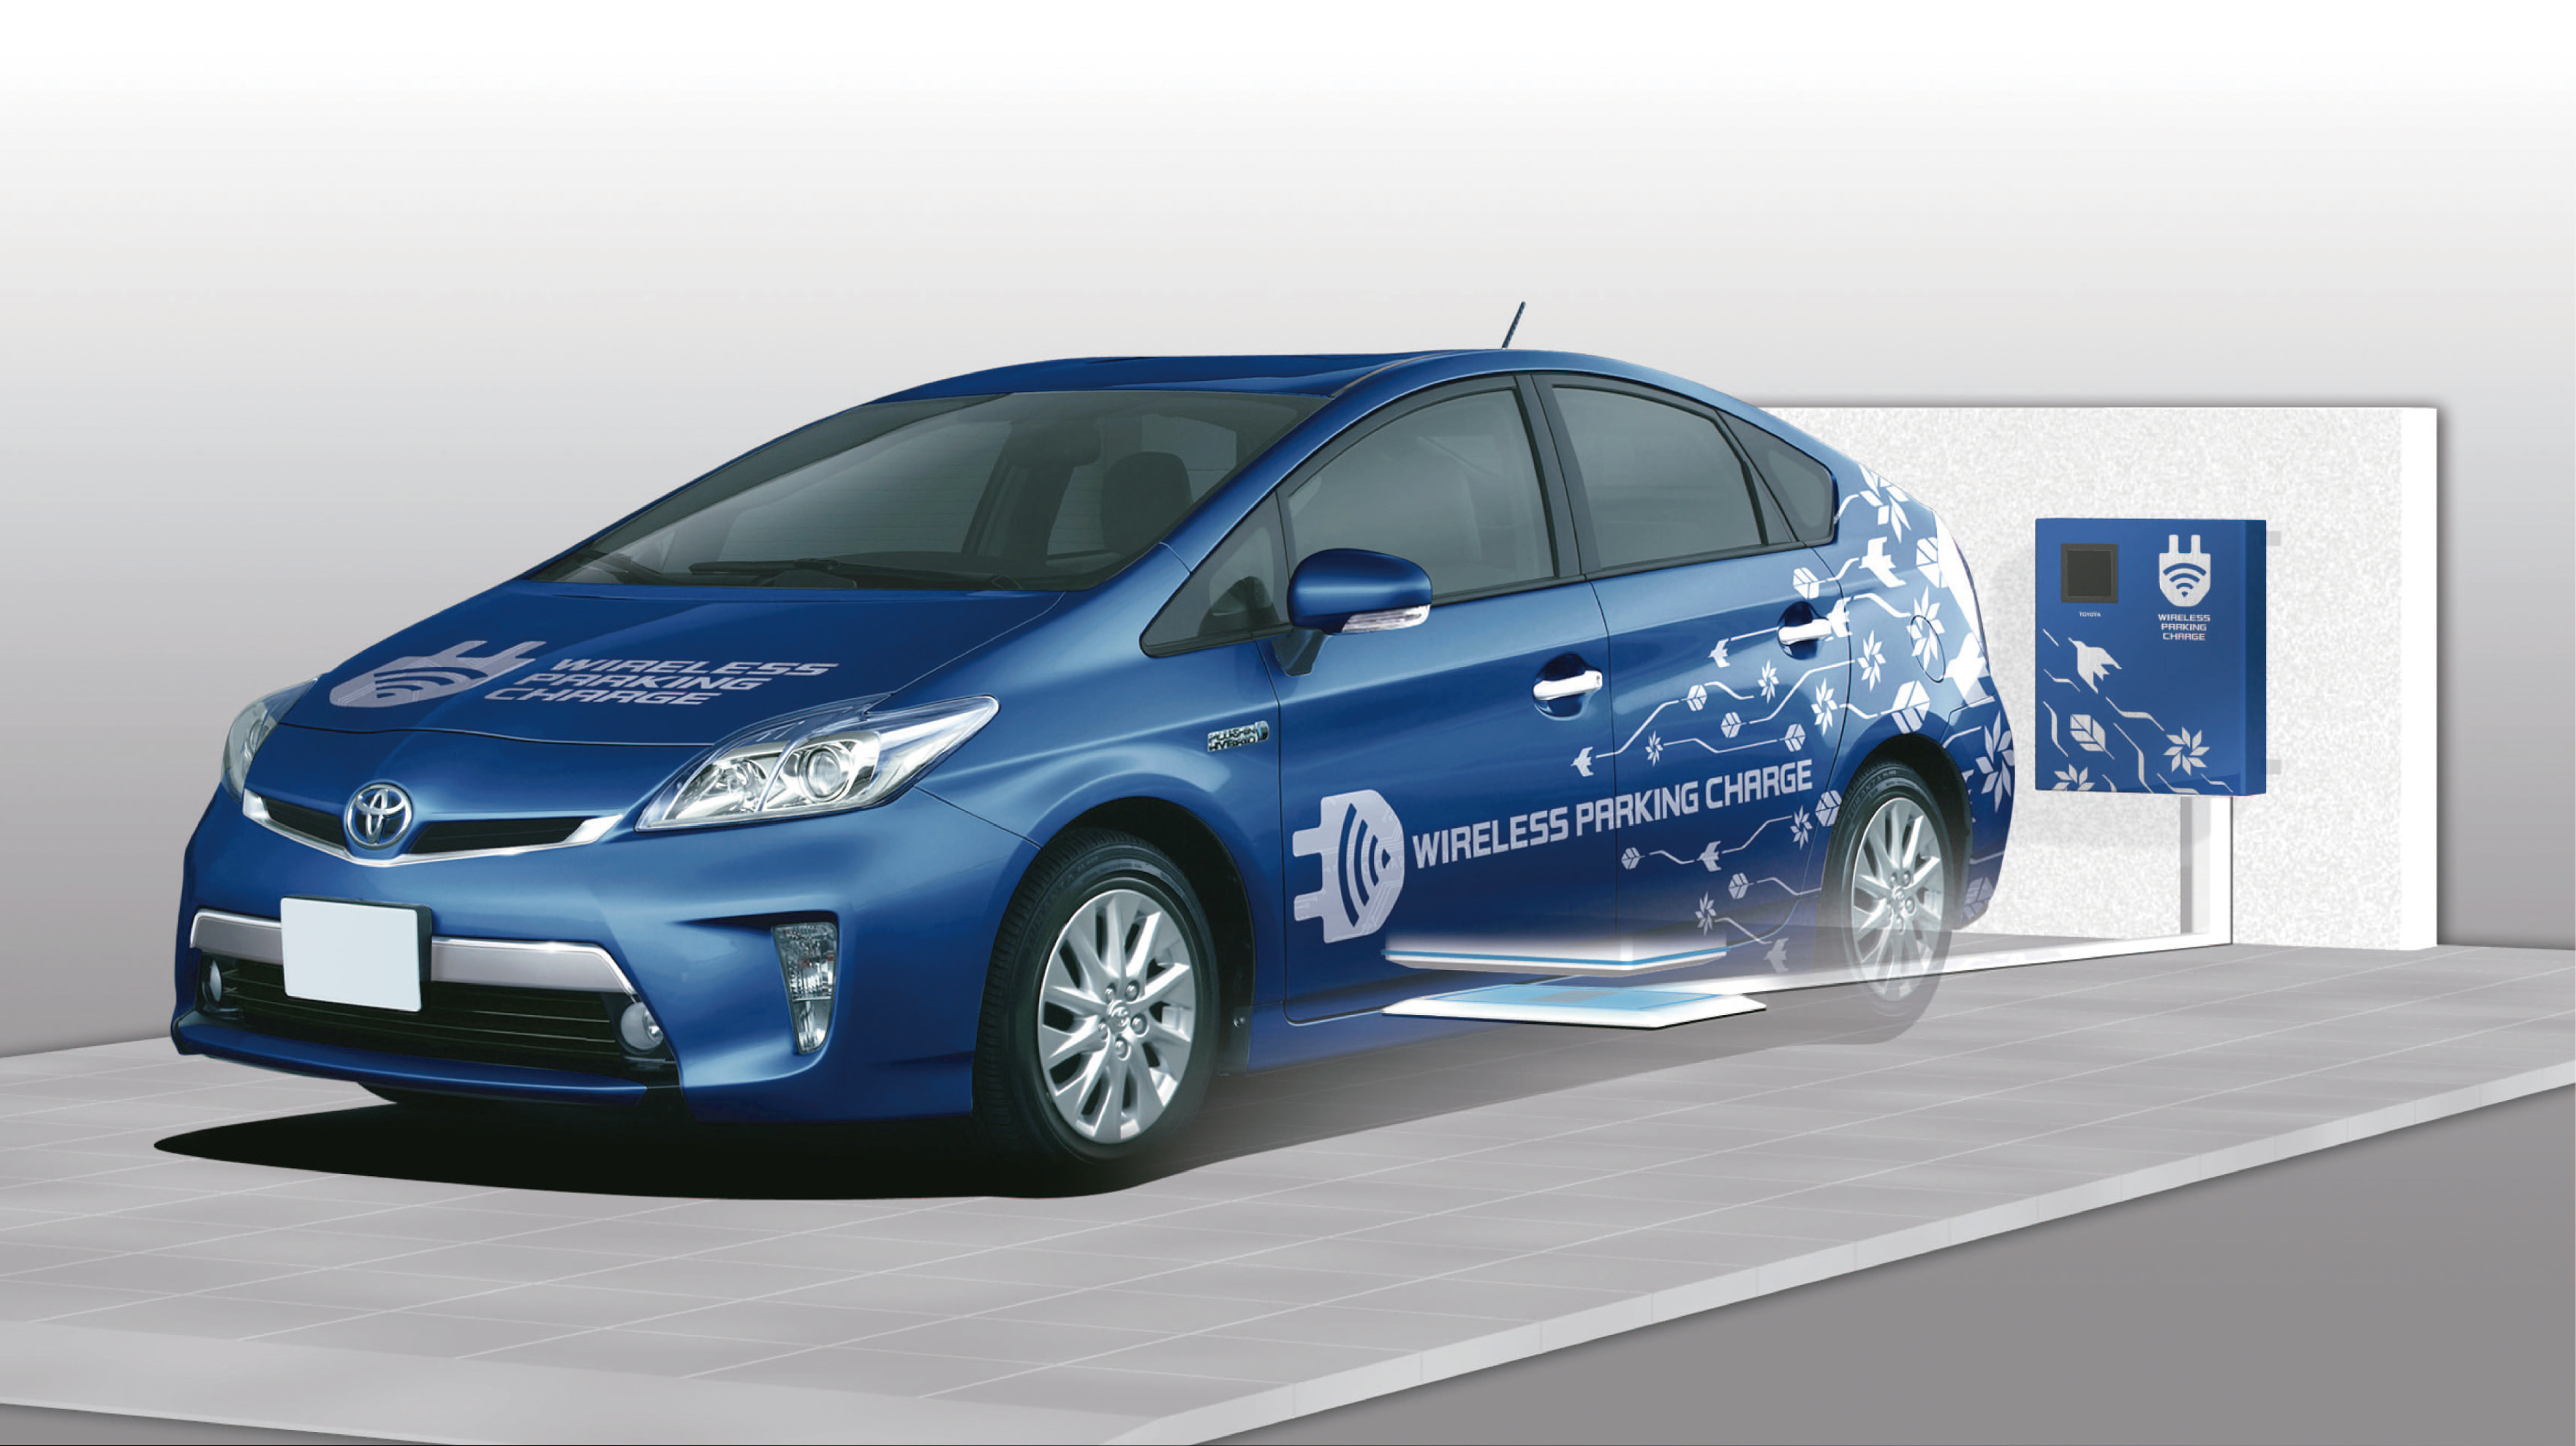 Toyota tests charging with new wireless technology. ©Toyota